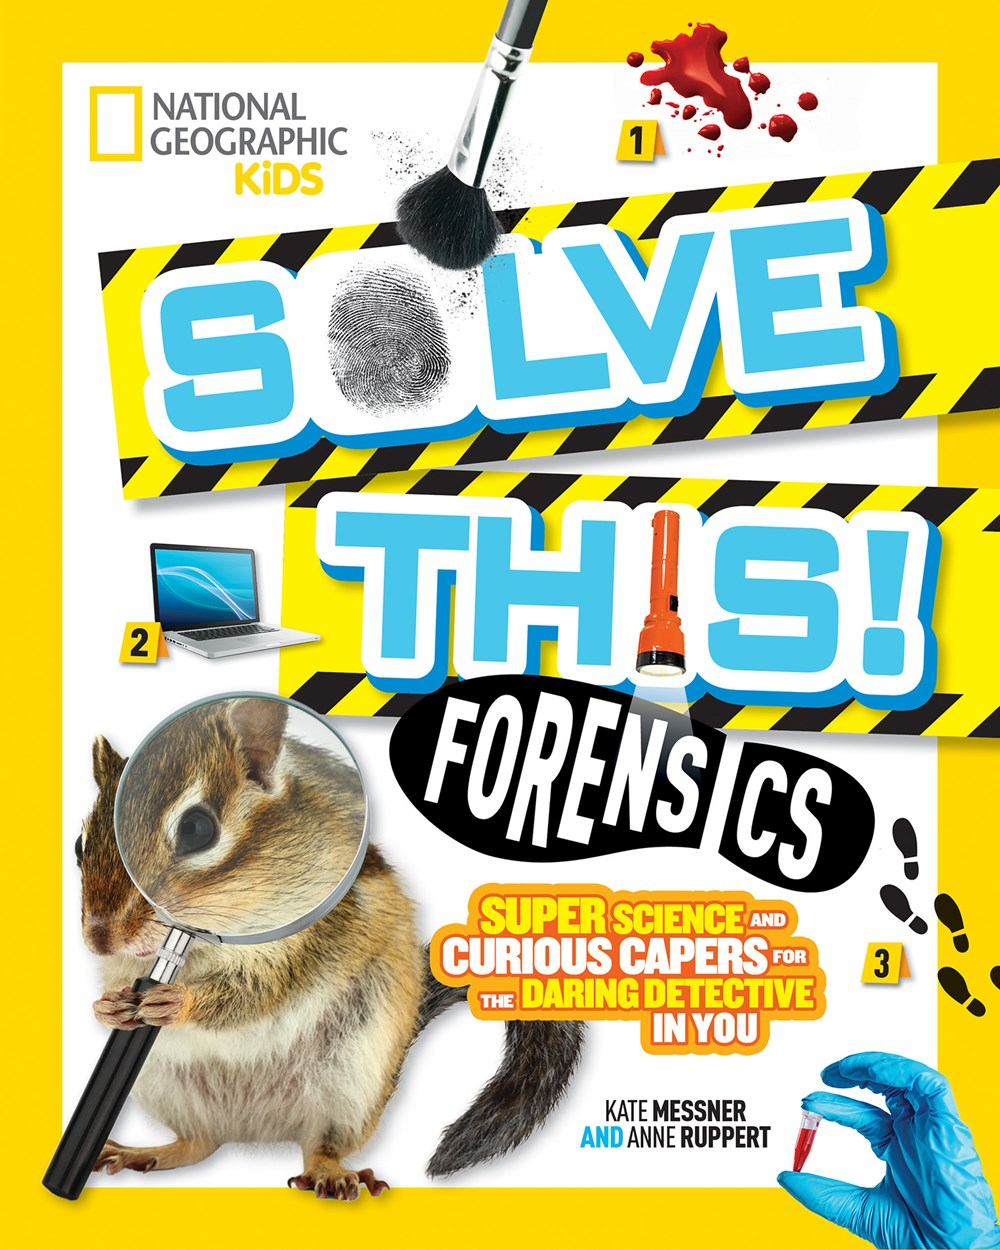 Forensics: Super Science and Curious Capers for the Daring Detective in You